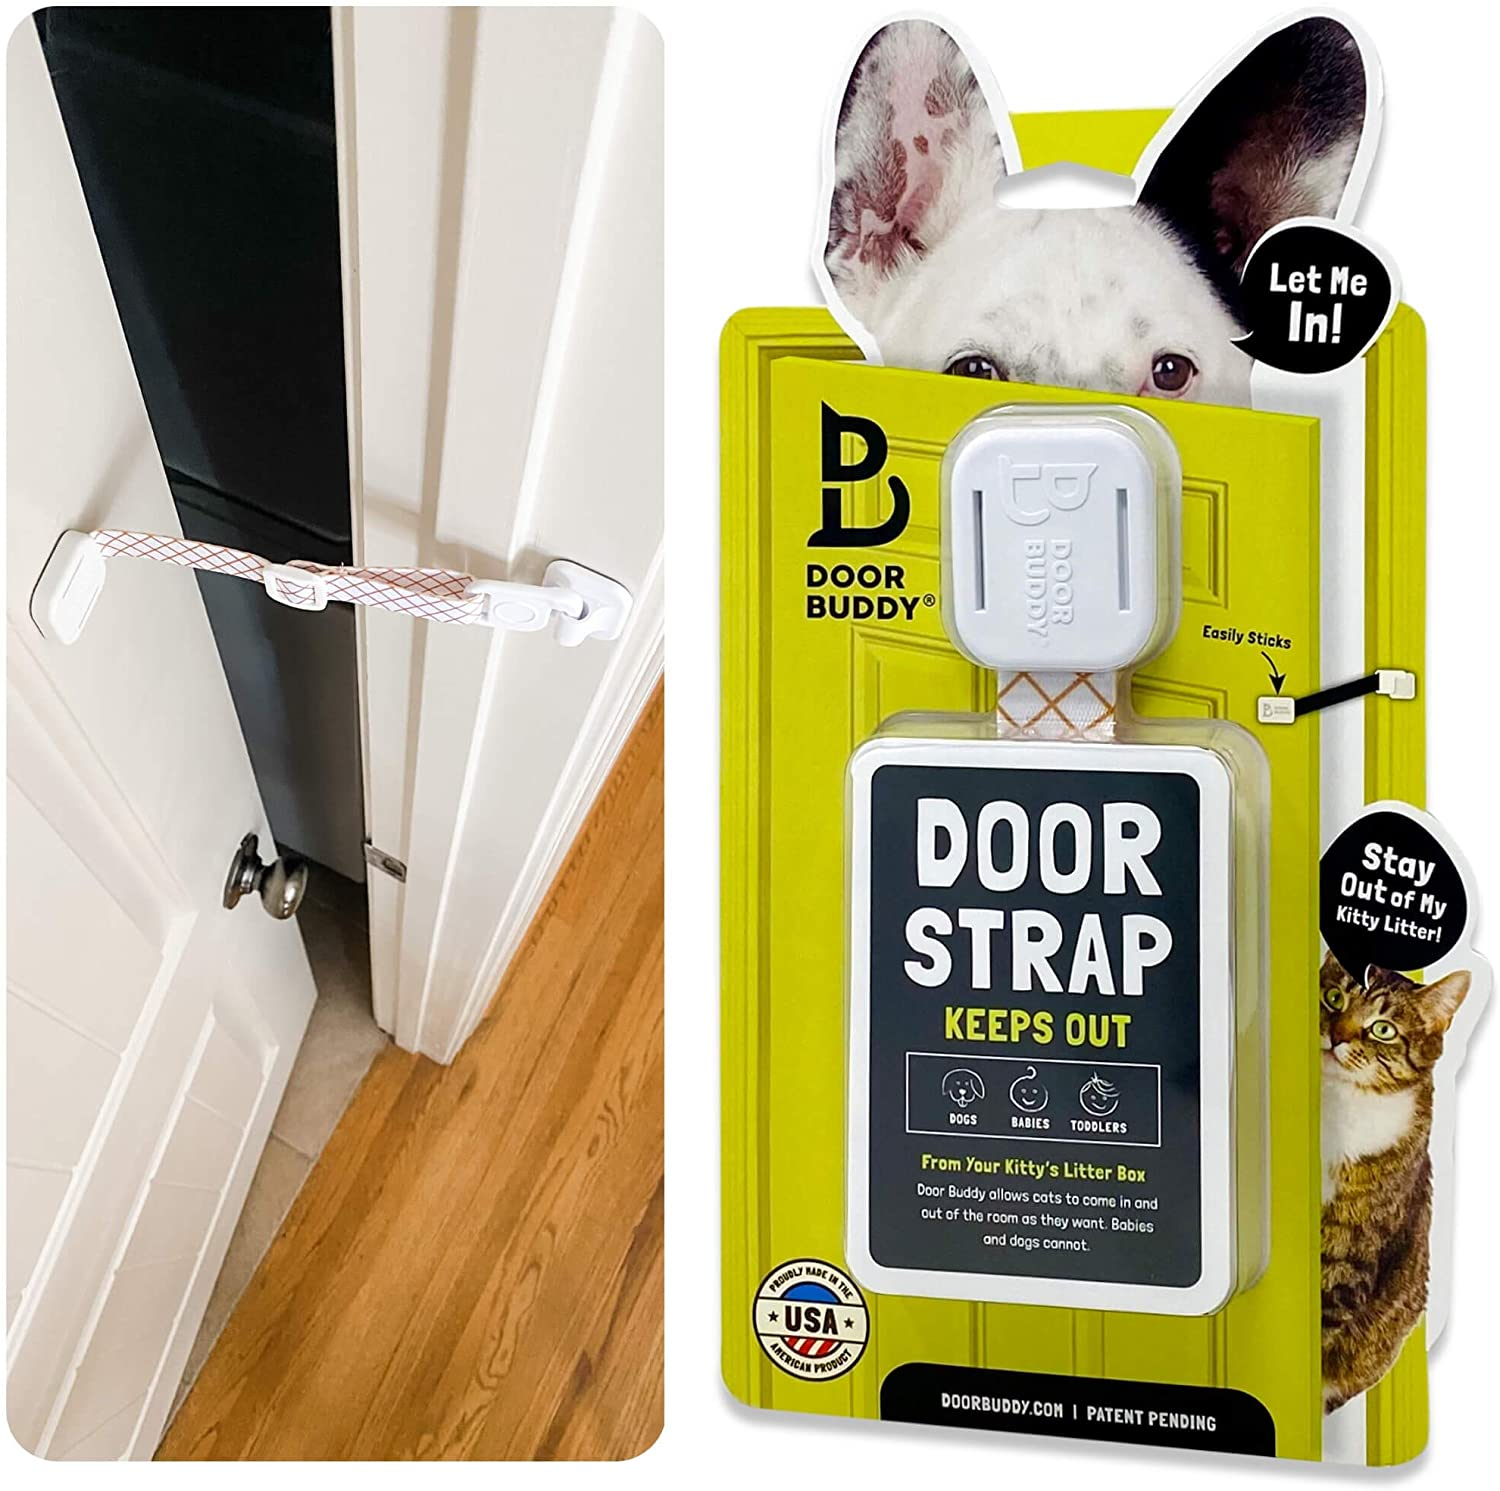 Door Buddy Adjustable Door Latch. Dog Proof Cat Litter Box Without a Dog Gate with Cat Door or Installing an Indoor Cat Door. Simpler Way to Keep Dogs Out of Room with Cat Box (Caramel)